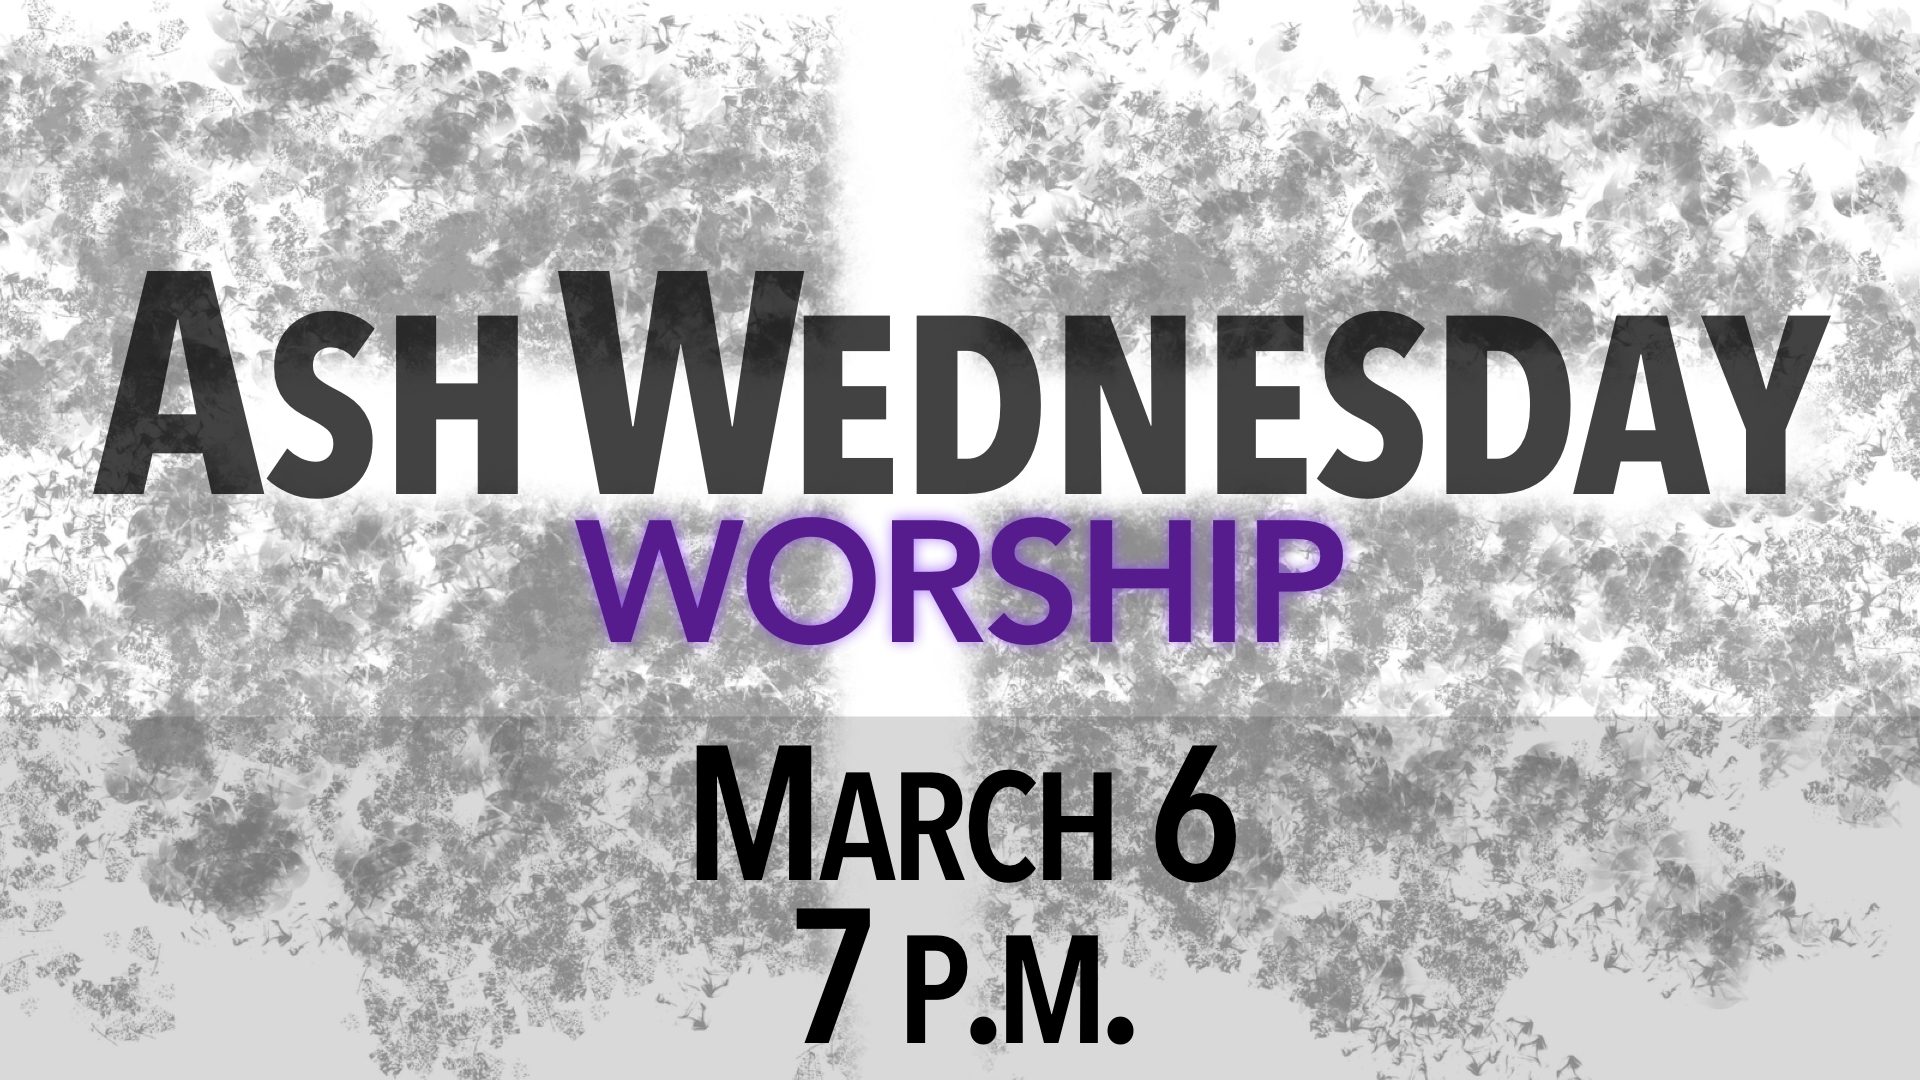 2019 Ash Wednesday Worship on March 6 at 7 p.m.